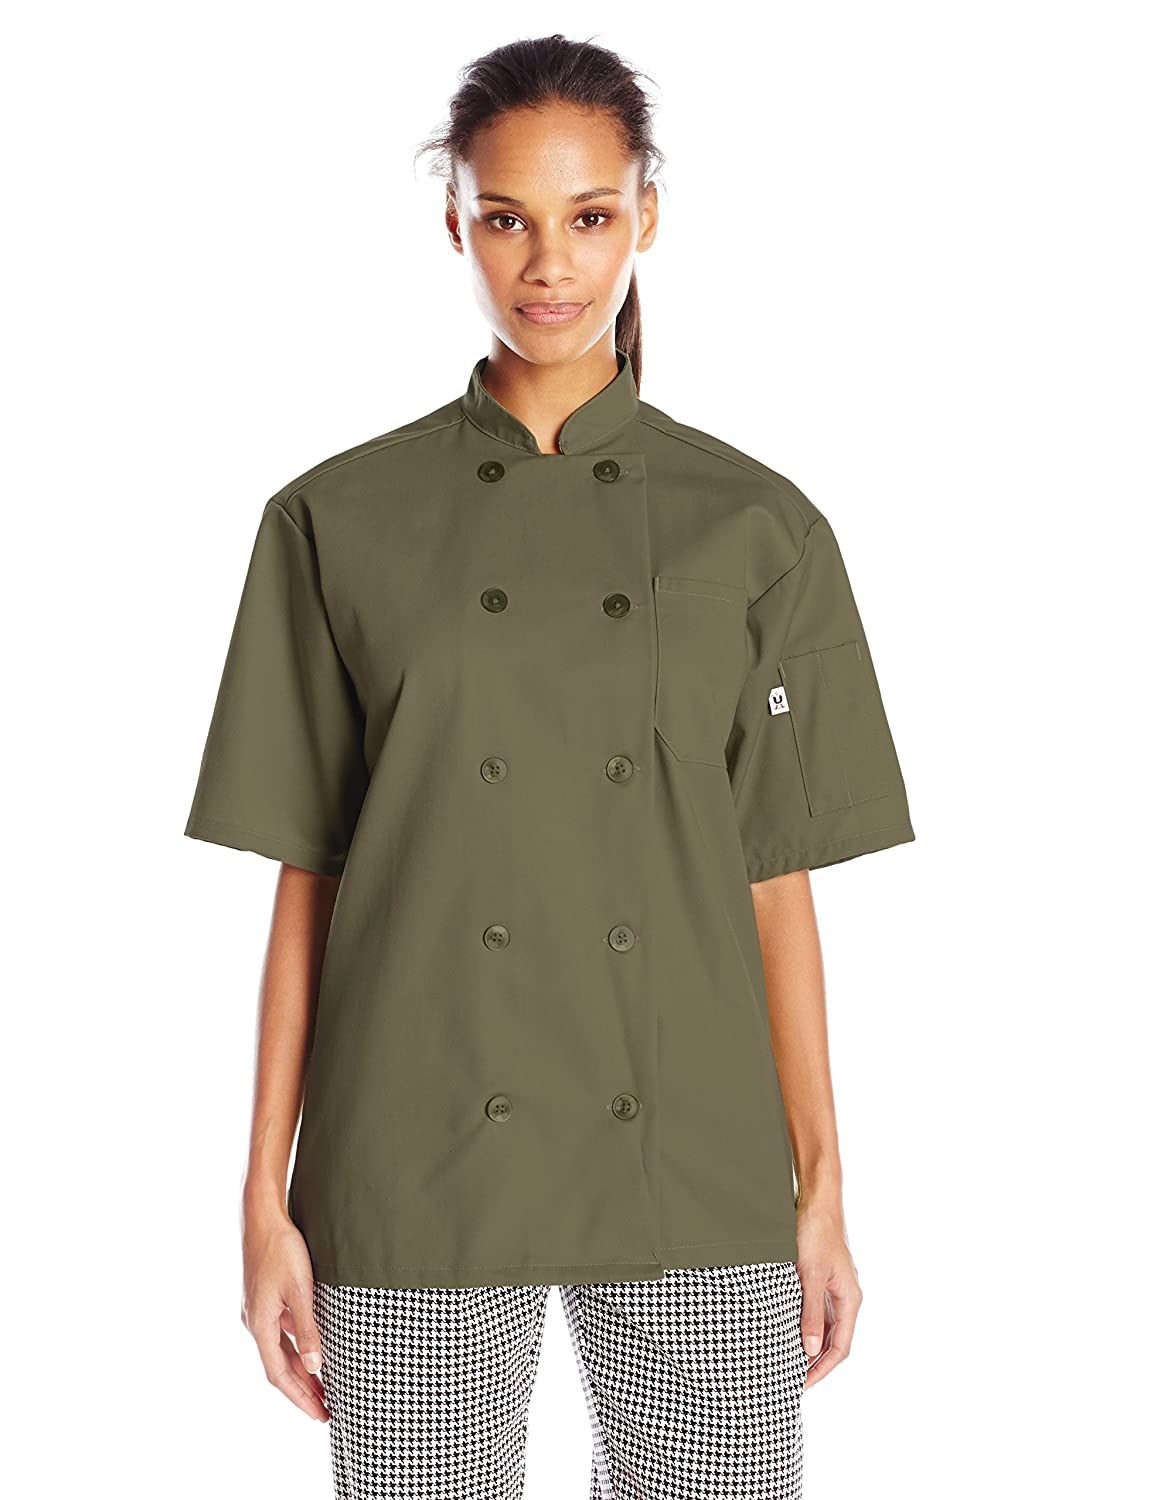 Uncommon Threads South Beach Chef Coat Short Sleeves 0415